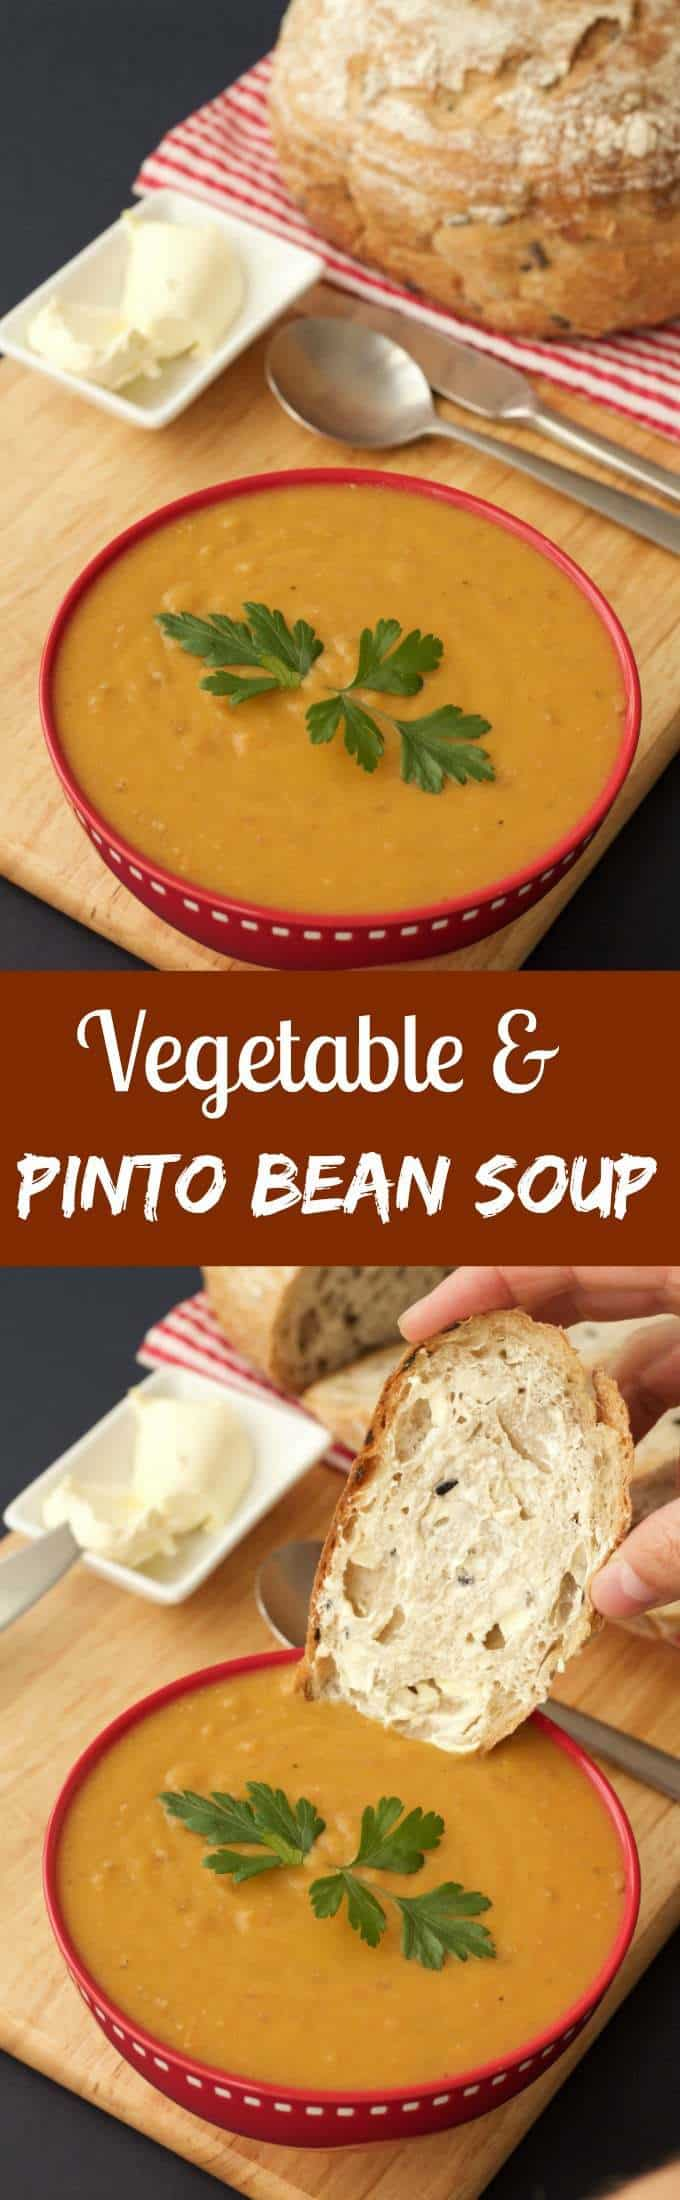 Vegetable and Pinto Bean Soup #vegan #lovingitvegan #glutenfree #dairyfree